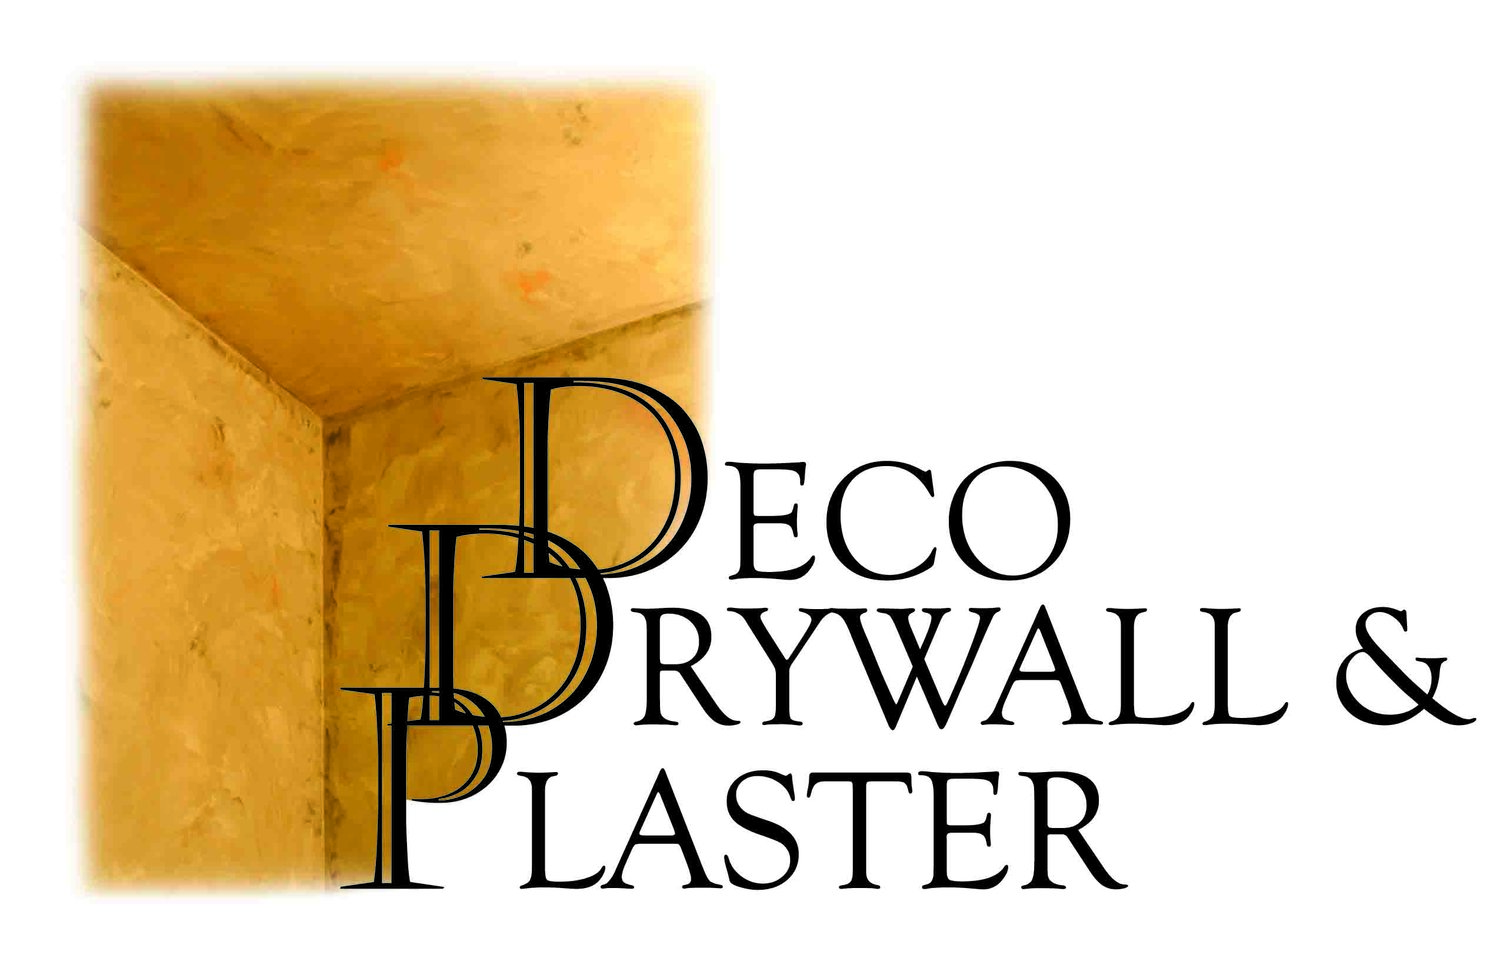 Deco Drywall & Plaster